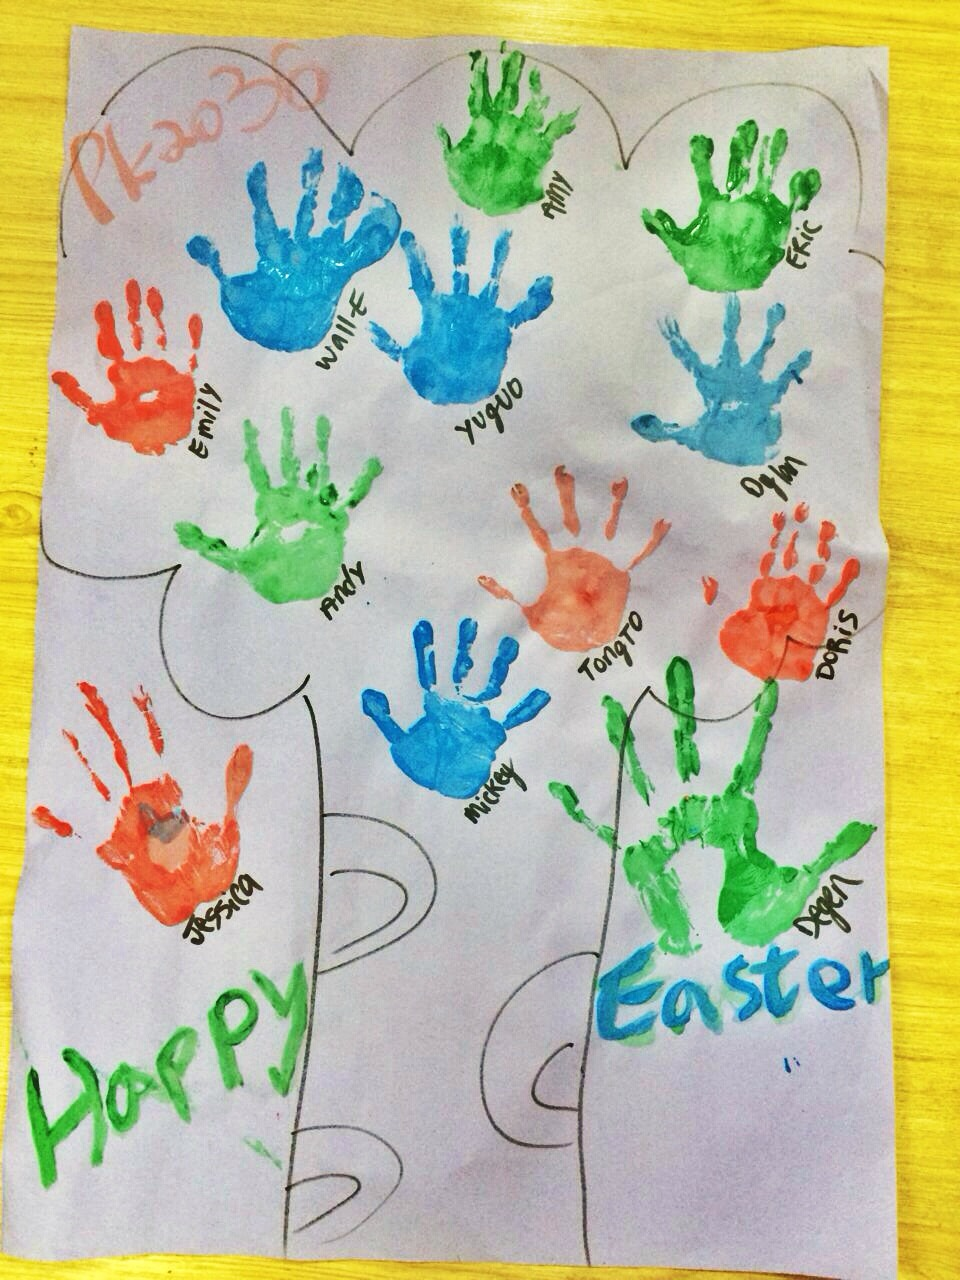 Happy belated Easter! And yes, I named one of my kids 'Wall-E' spelled with a '-'